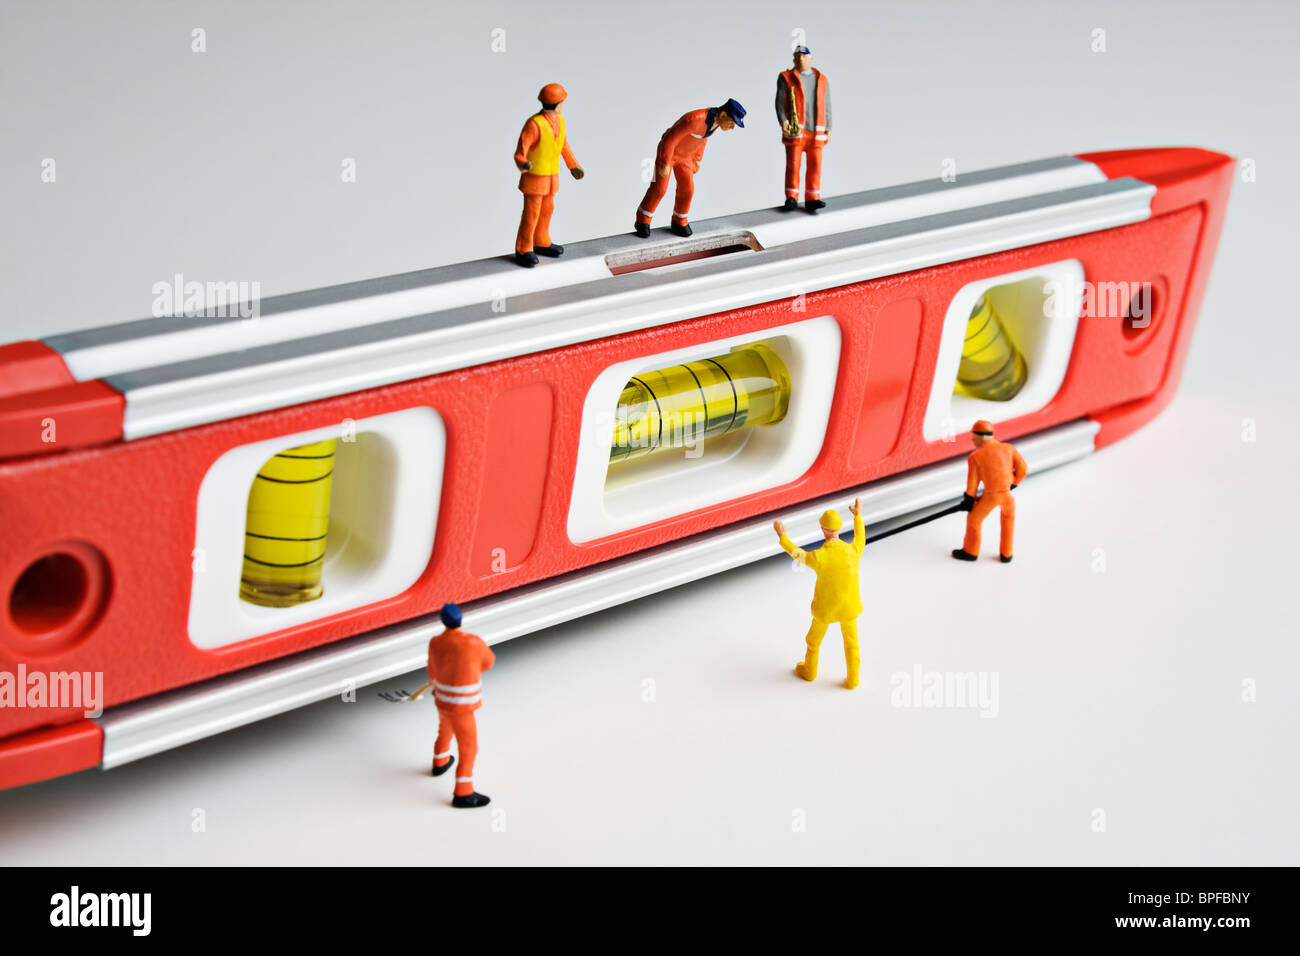 Worker figurines placed on a level - Stock Image